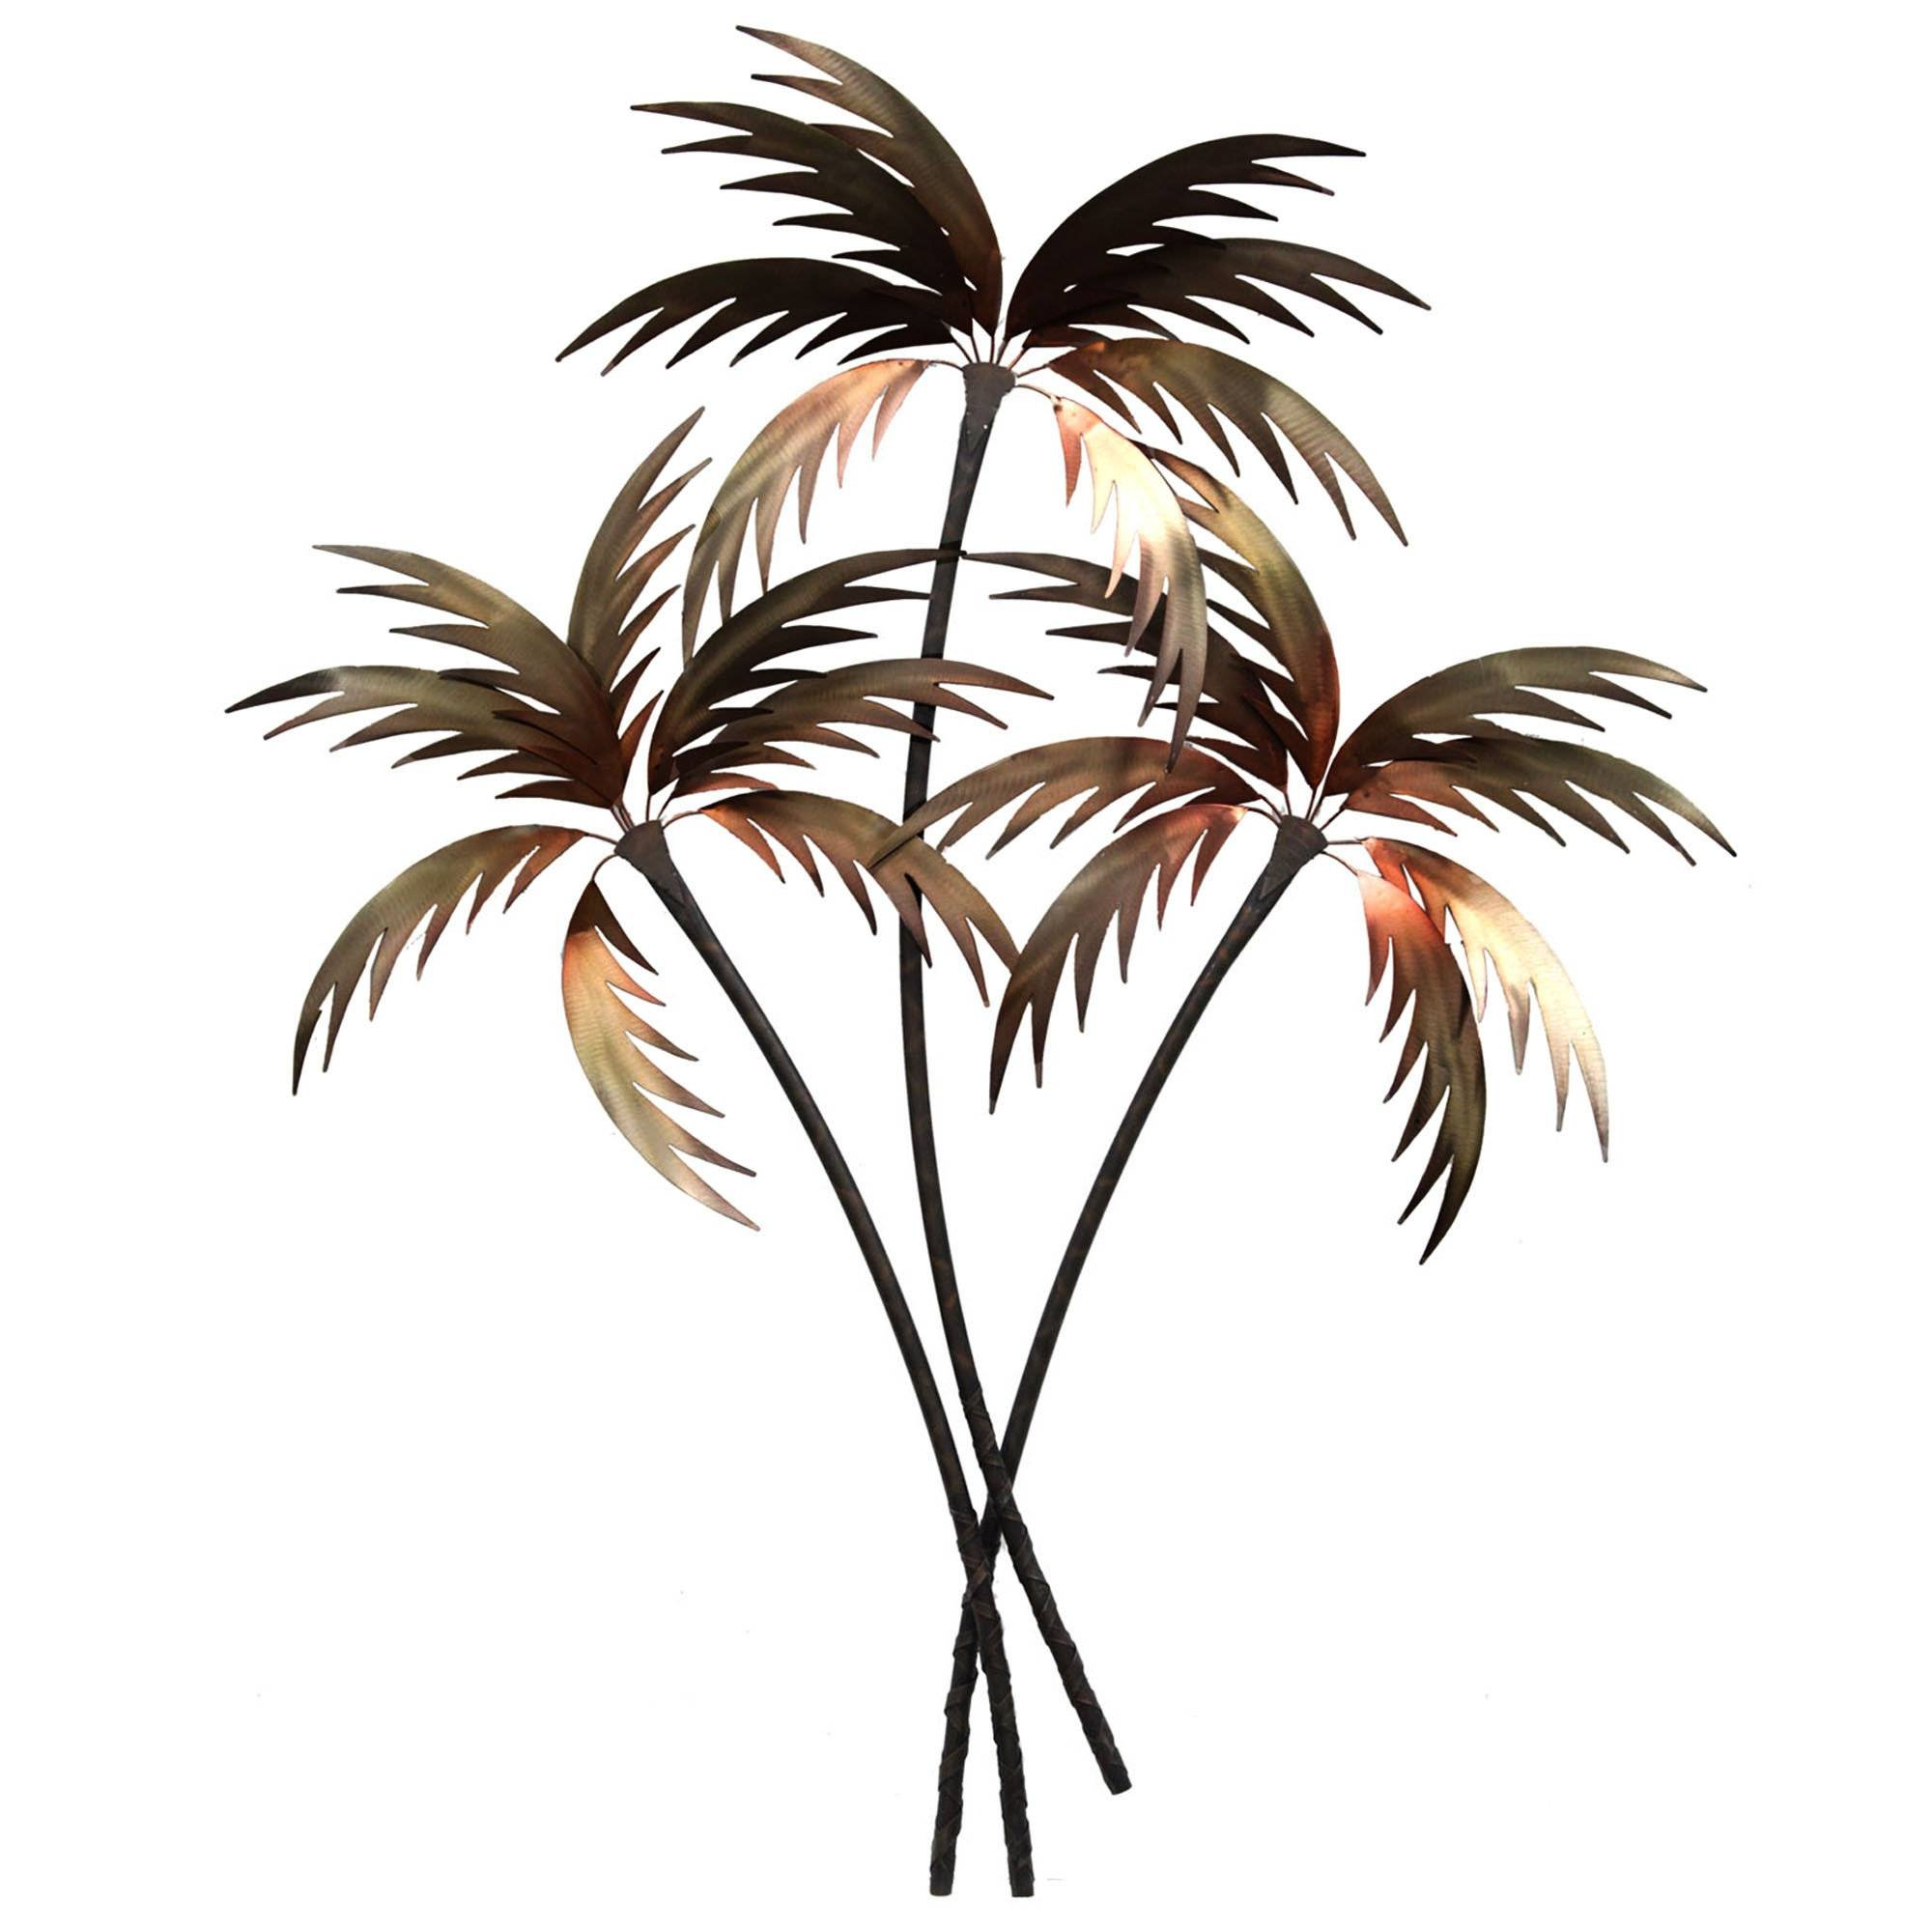 25 collection of palm tree metal art. Black Bedroom Furniture Sets. Home Design Ideas